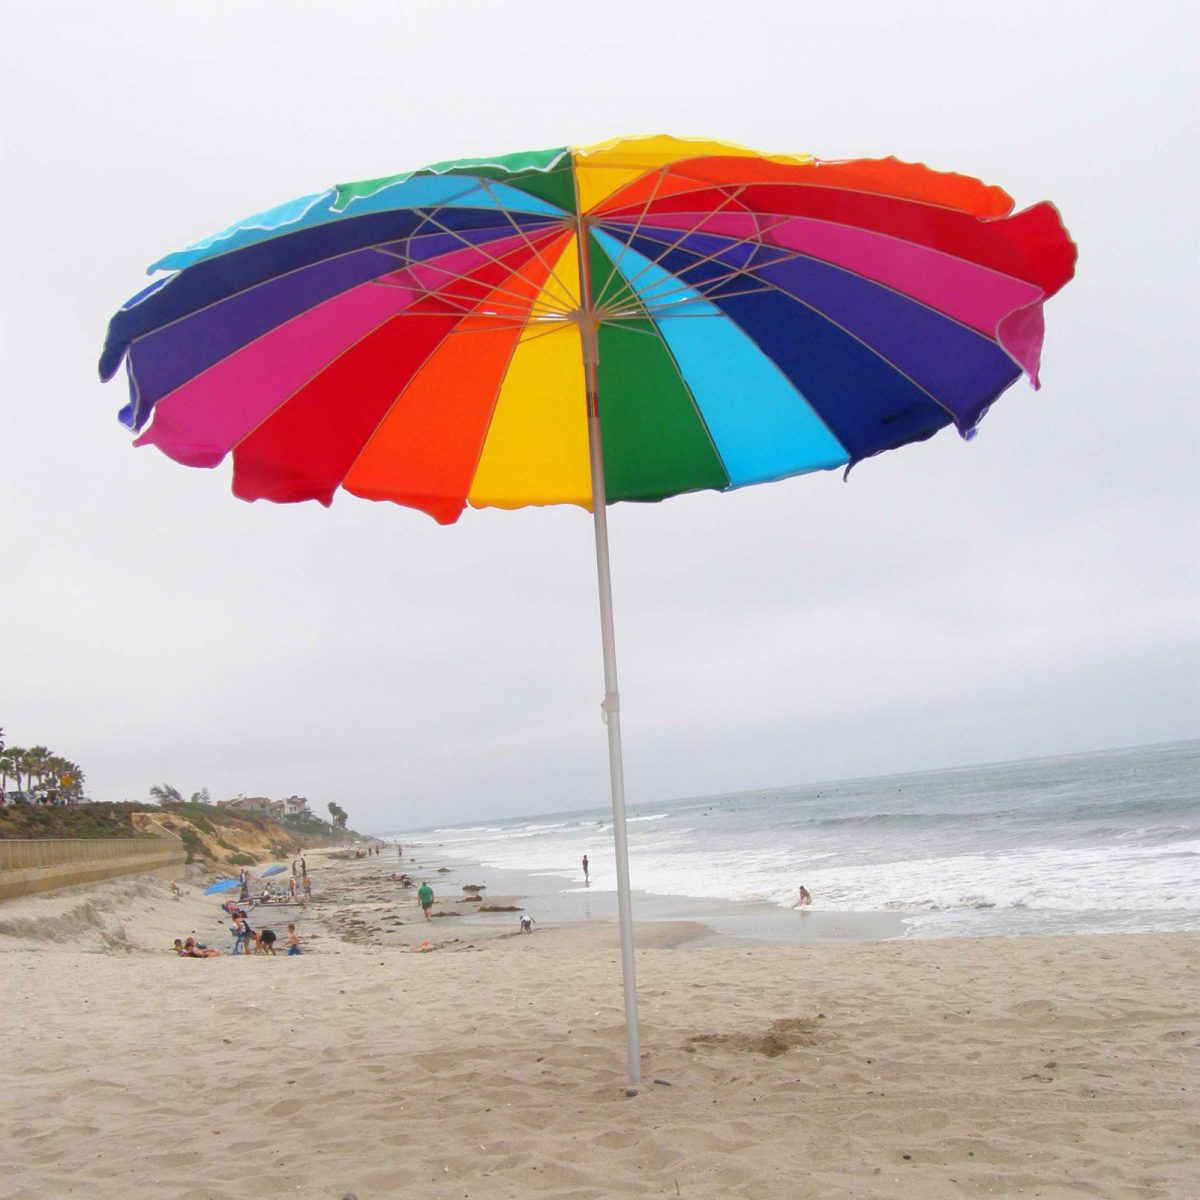 ccb1d755a5e3c067113d990c29481477 - The Best Beach Umbrellas For The Beach Bum In You